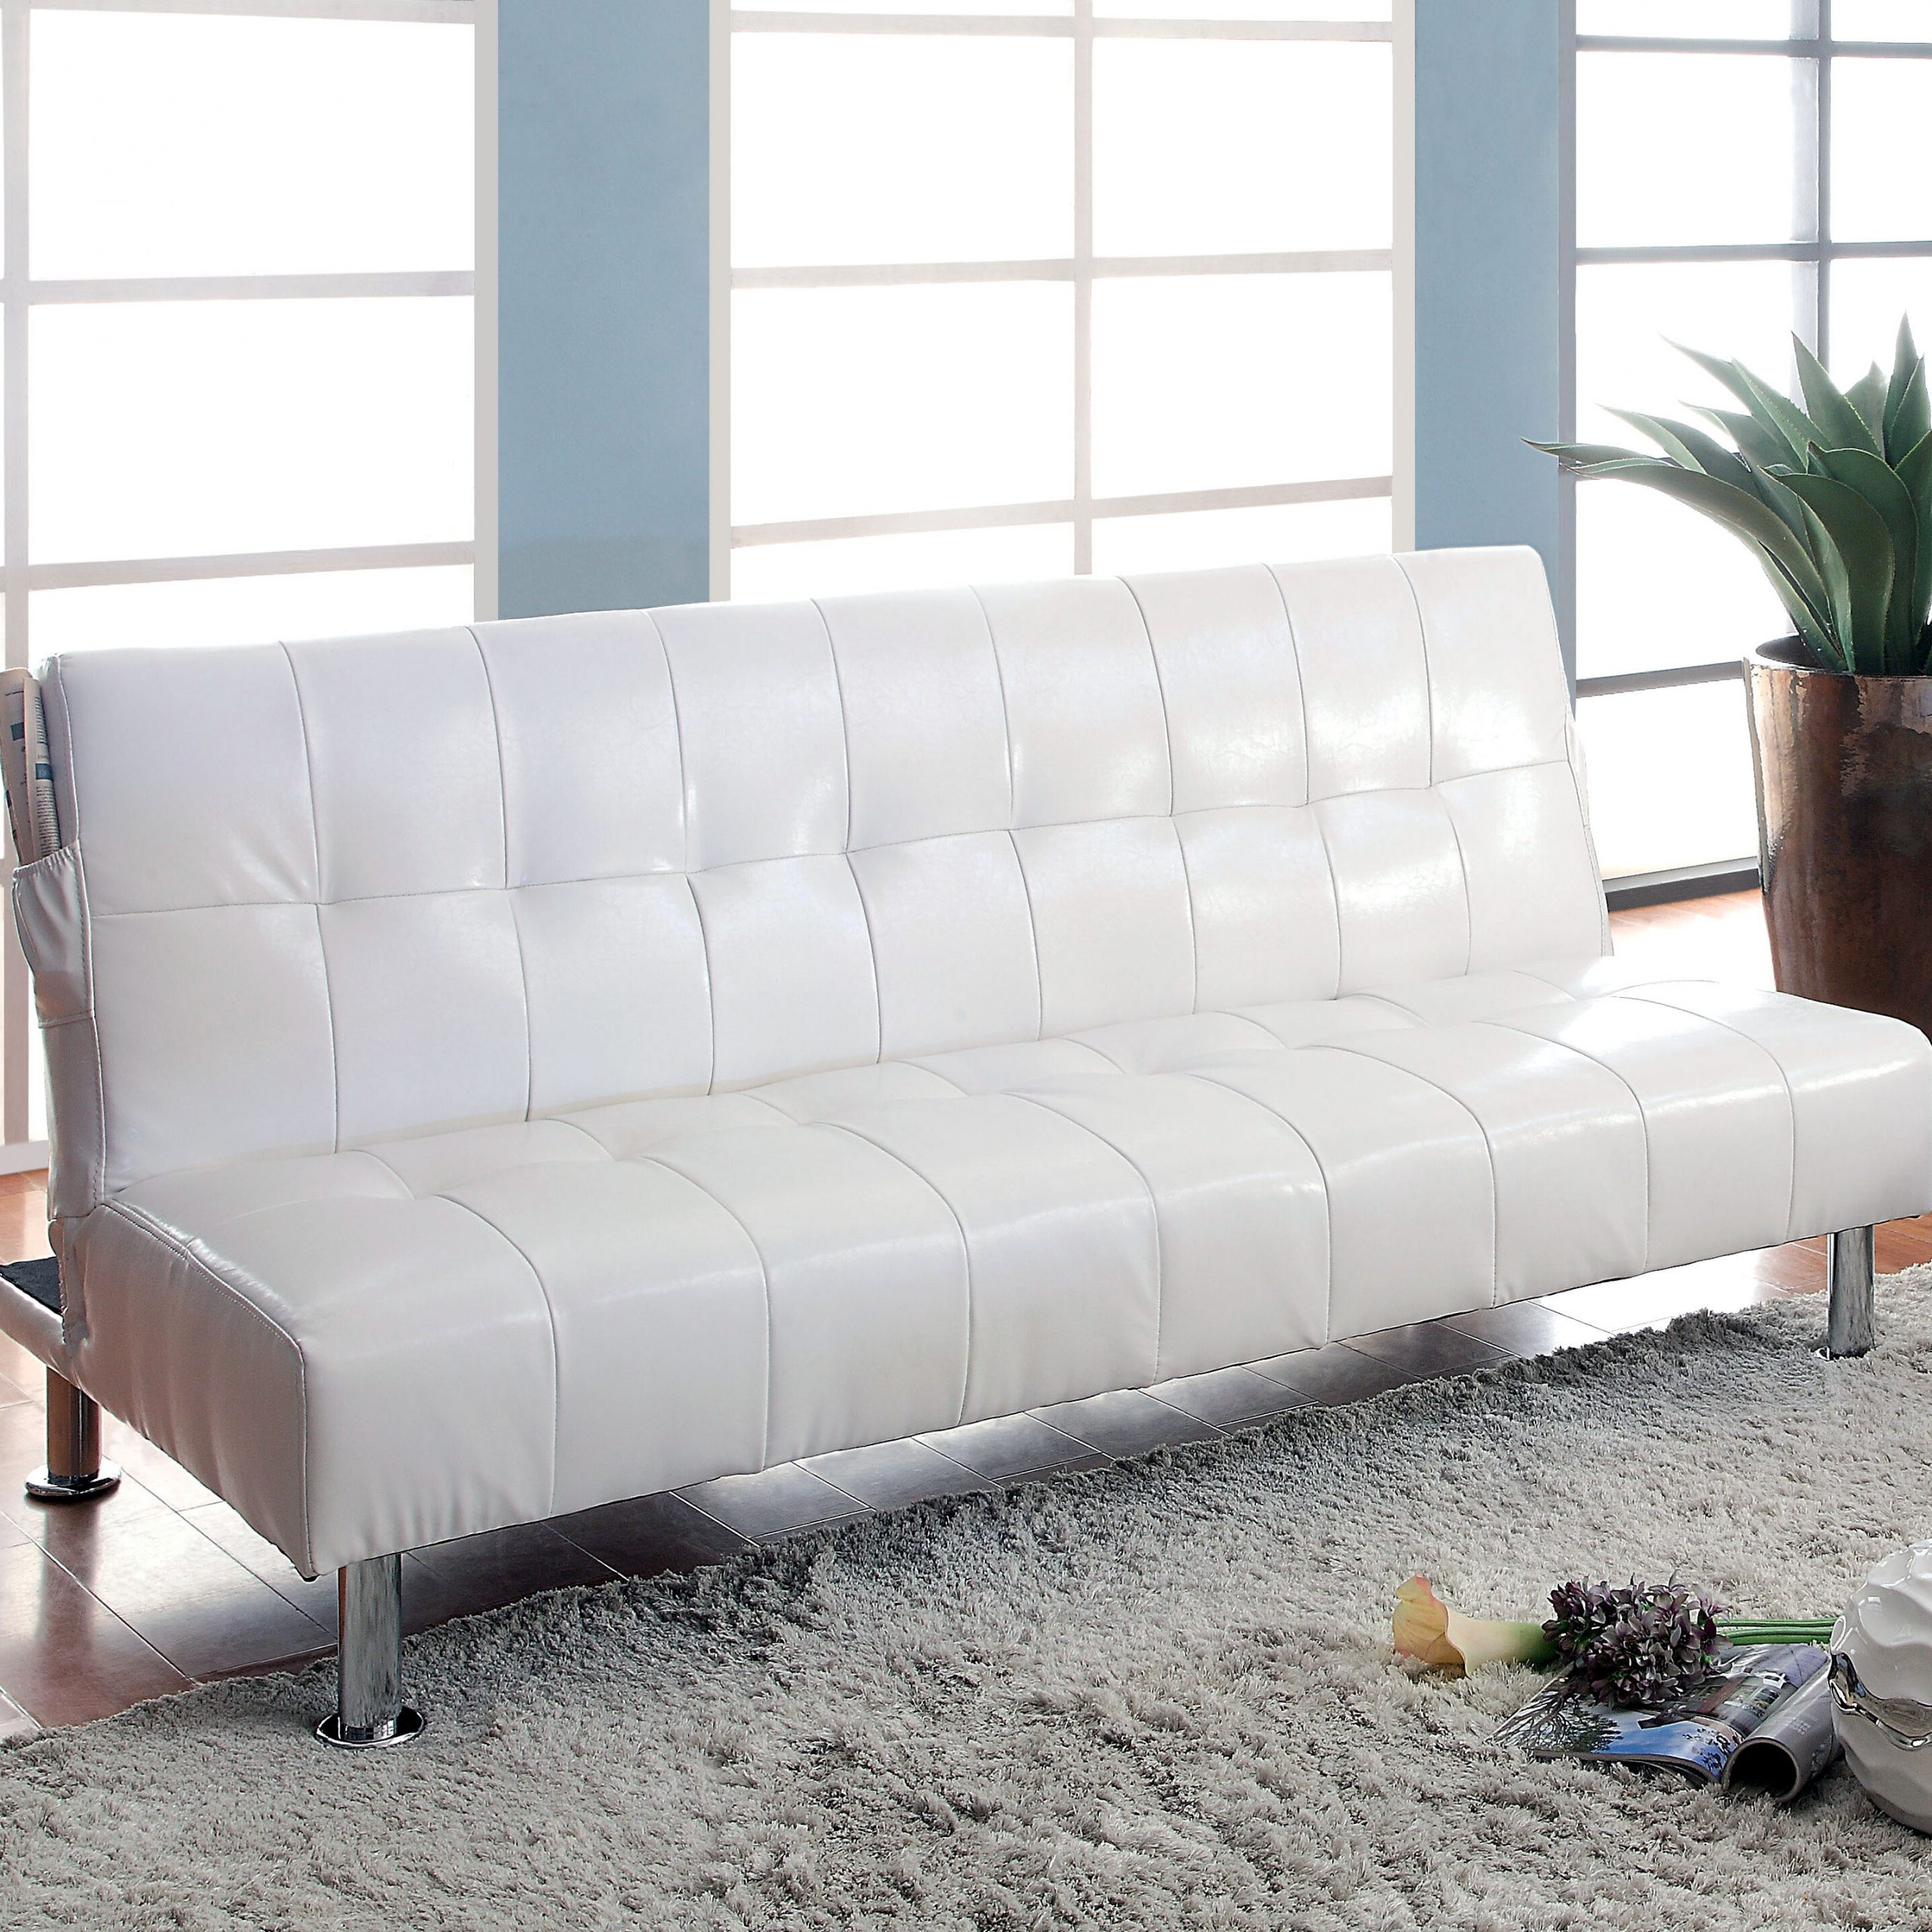 Most Popular Perz Tufted Faux Leather Convertible Chairs Throughout Perz Tufted Convertible Sofa (View 5 of 20)